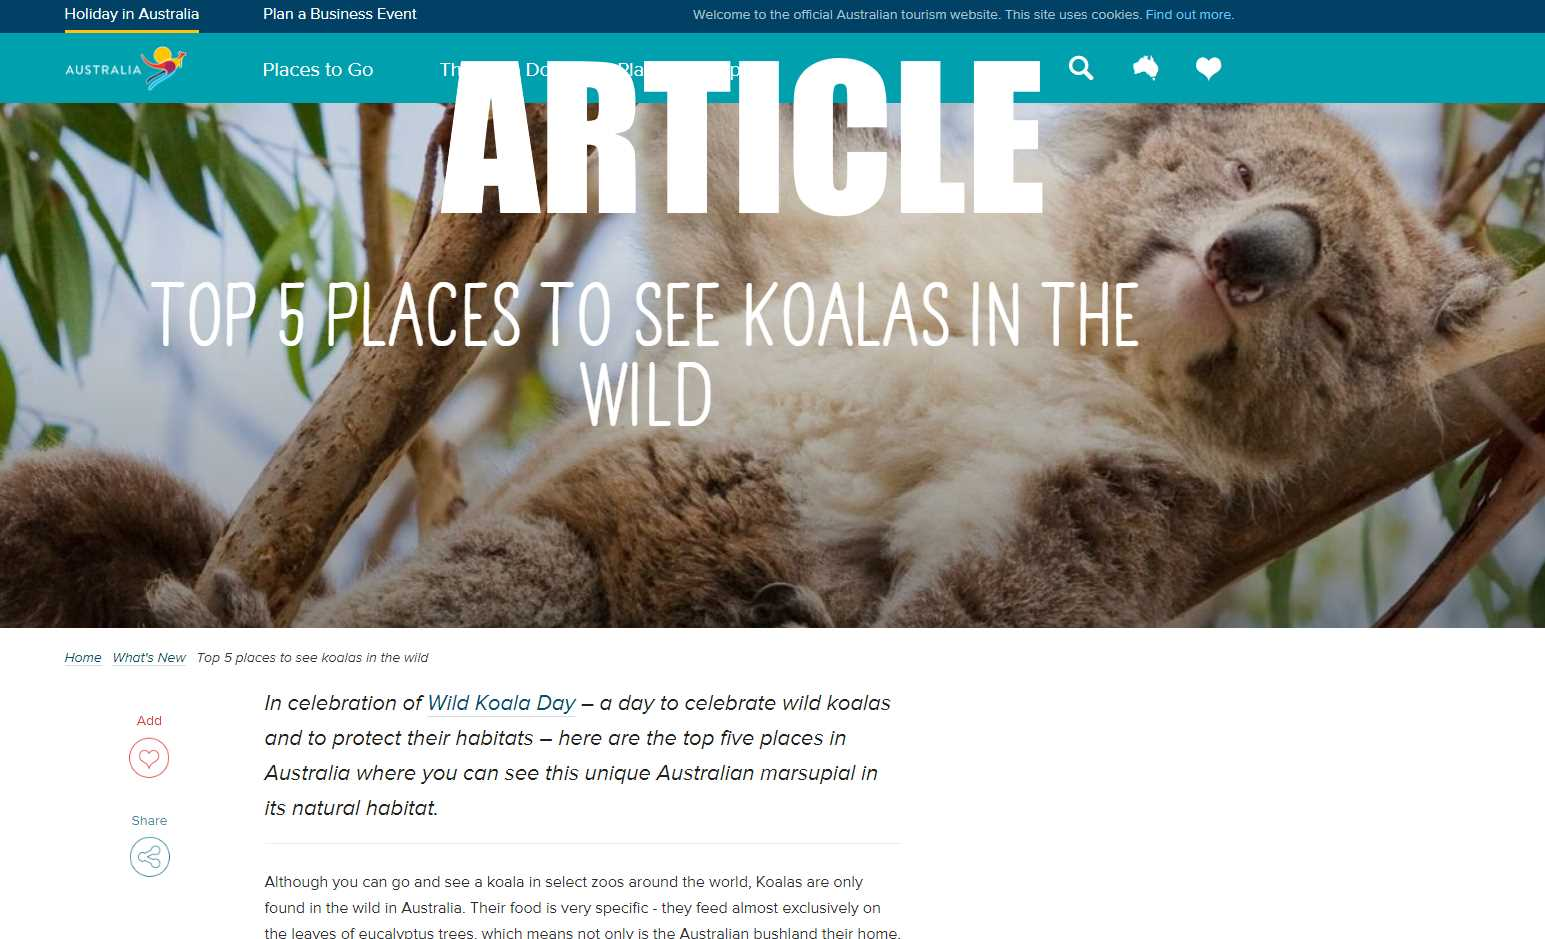 Official Australian government article about where to see wild koalas